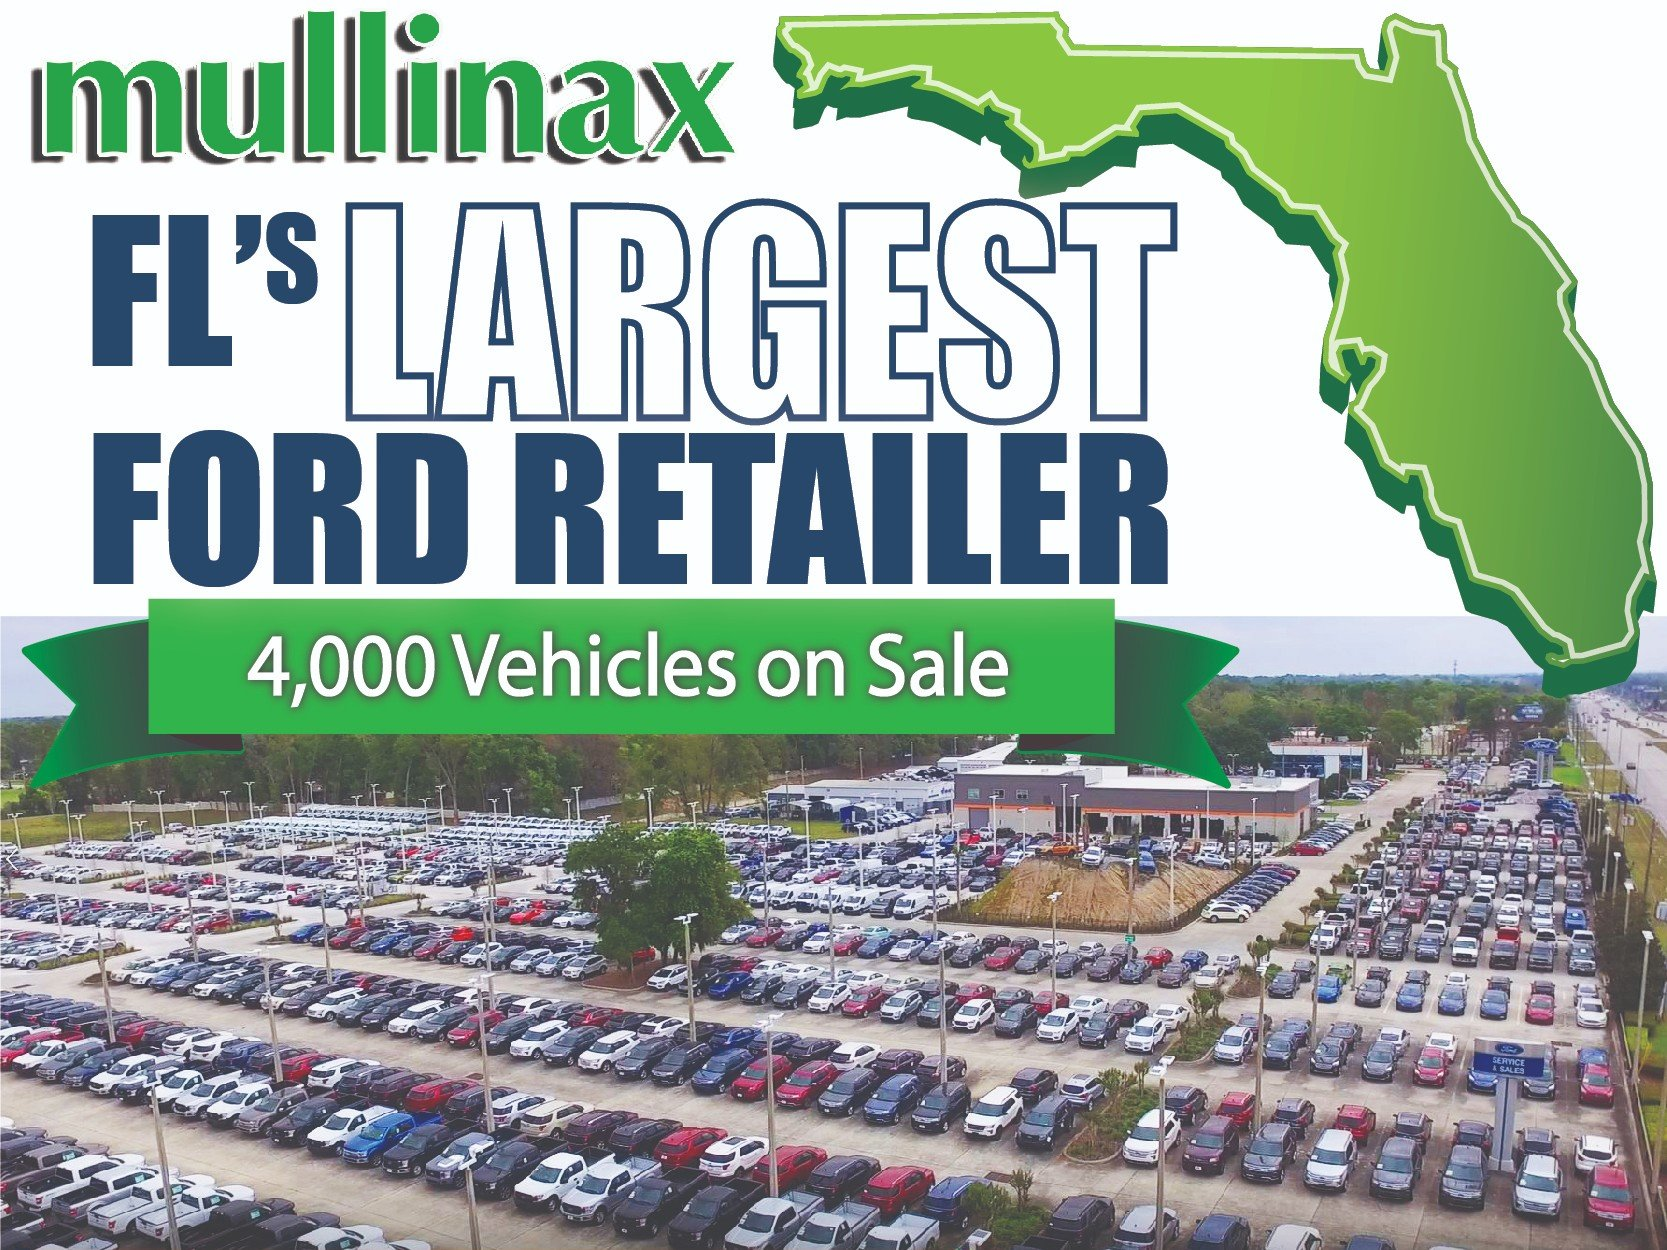 Mullinax is Florida's Largest Ford Retailer